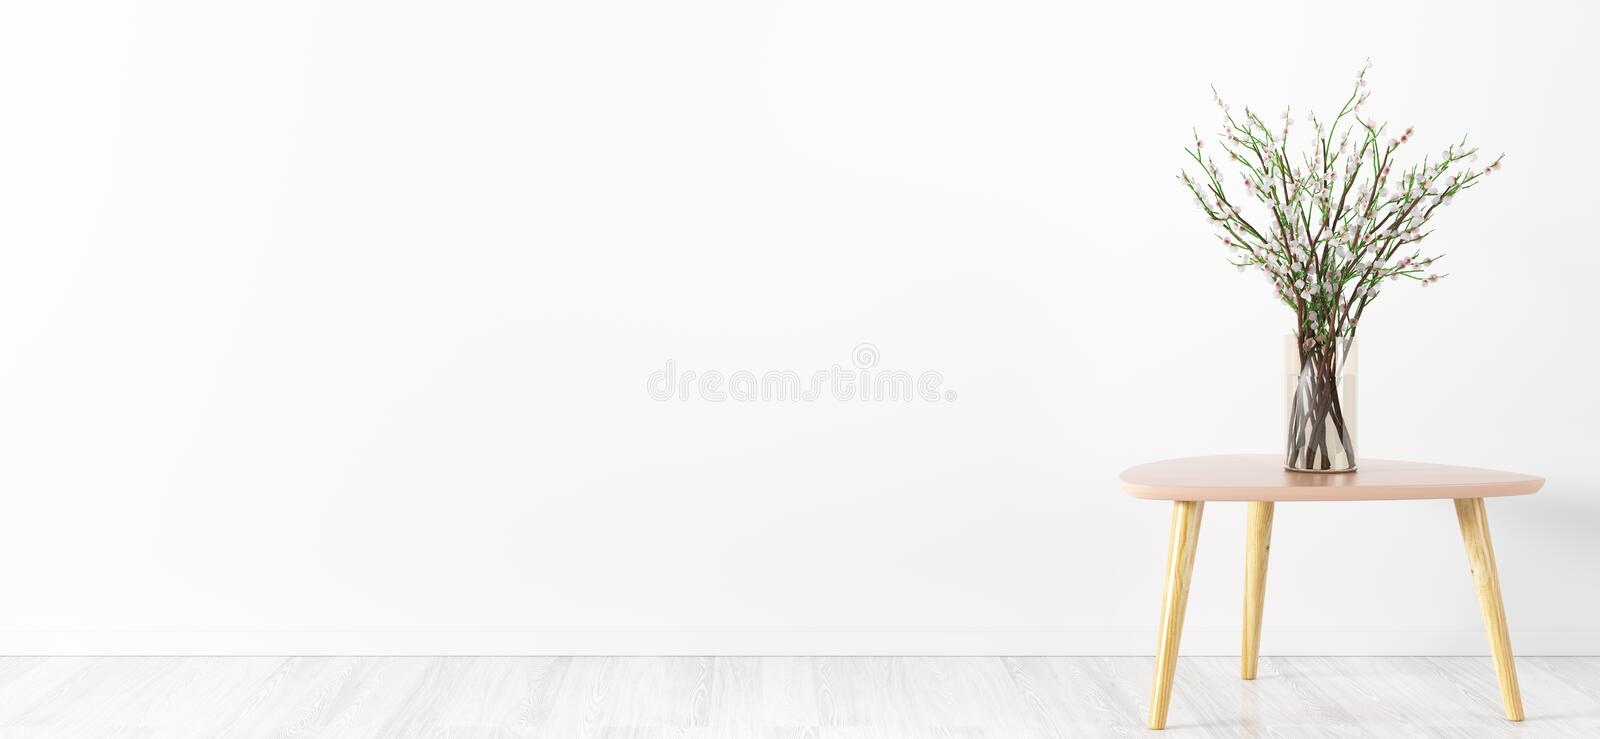 Flower vase over white wall interior background 3d rendering. Room interior background, glass vase with flower branches on the table over white wall, panorama vector illustration